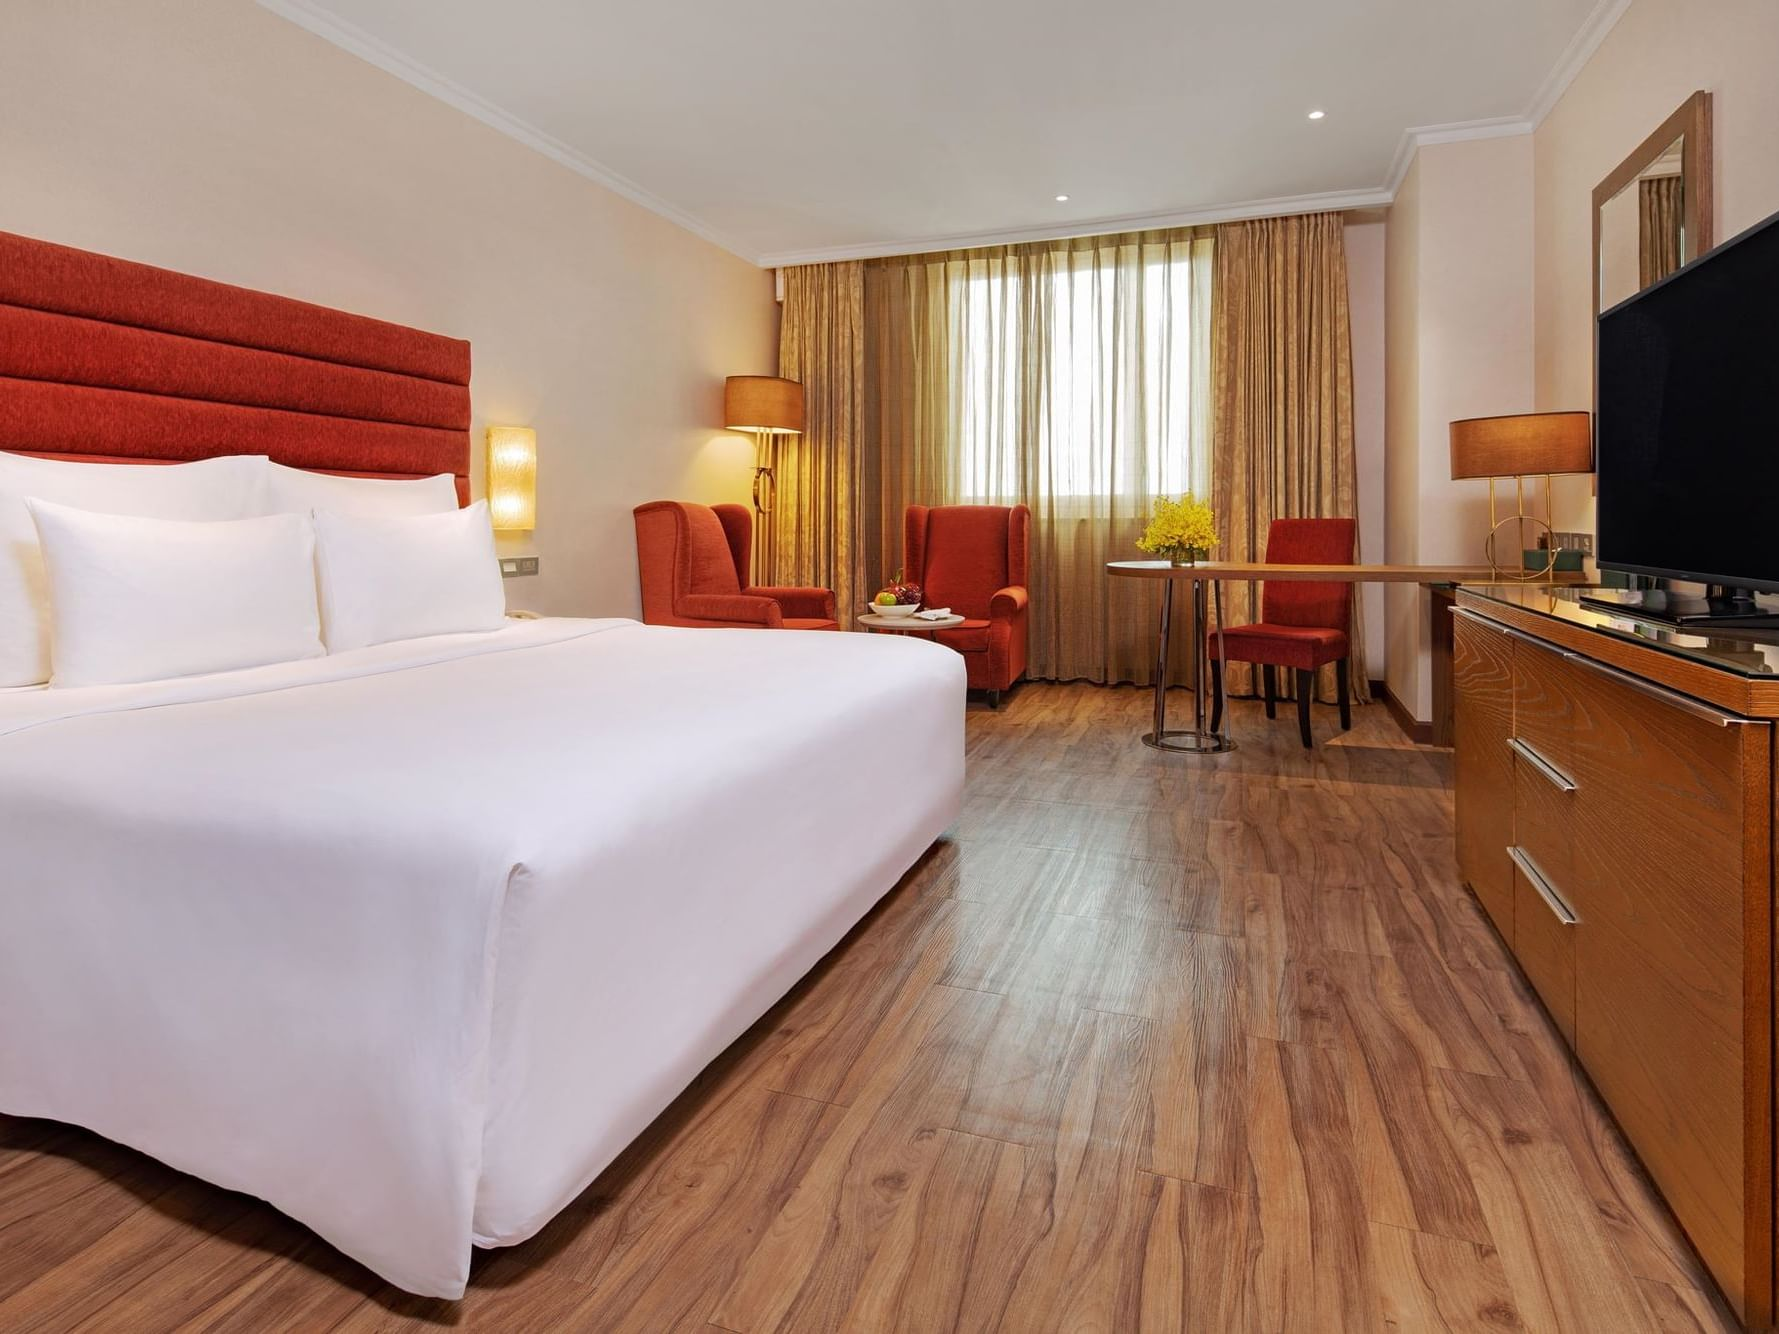 spacious hotel room with wood and red cushion furnishings